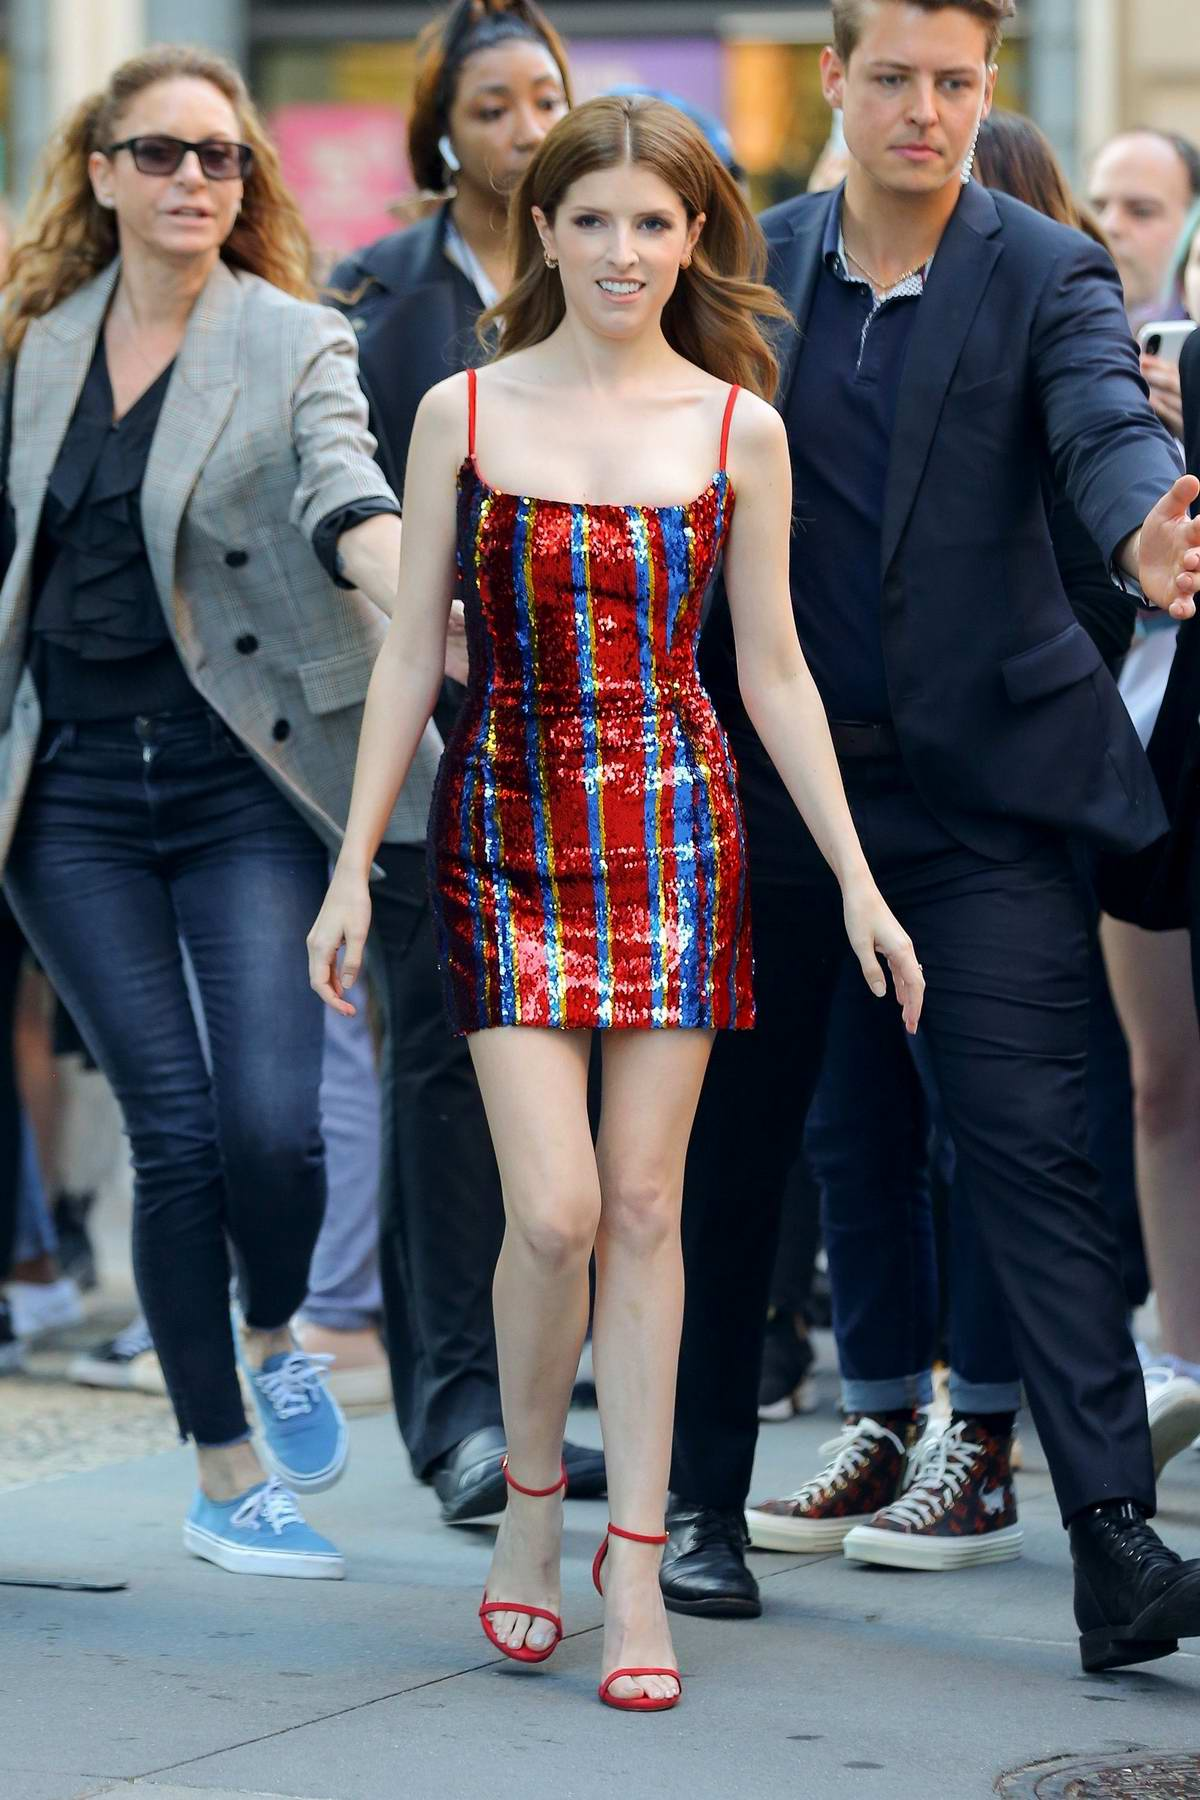 Anna Kendrick dazzles in a sequined mini dress while visiting AOL Build Studios in New York City